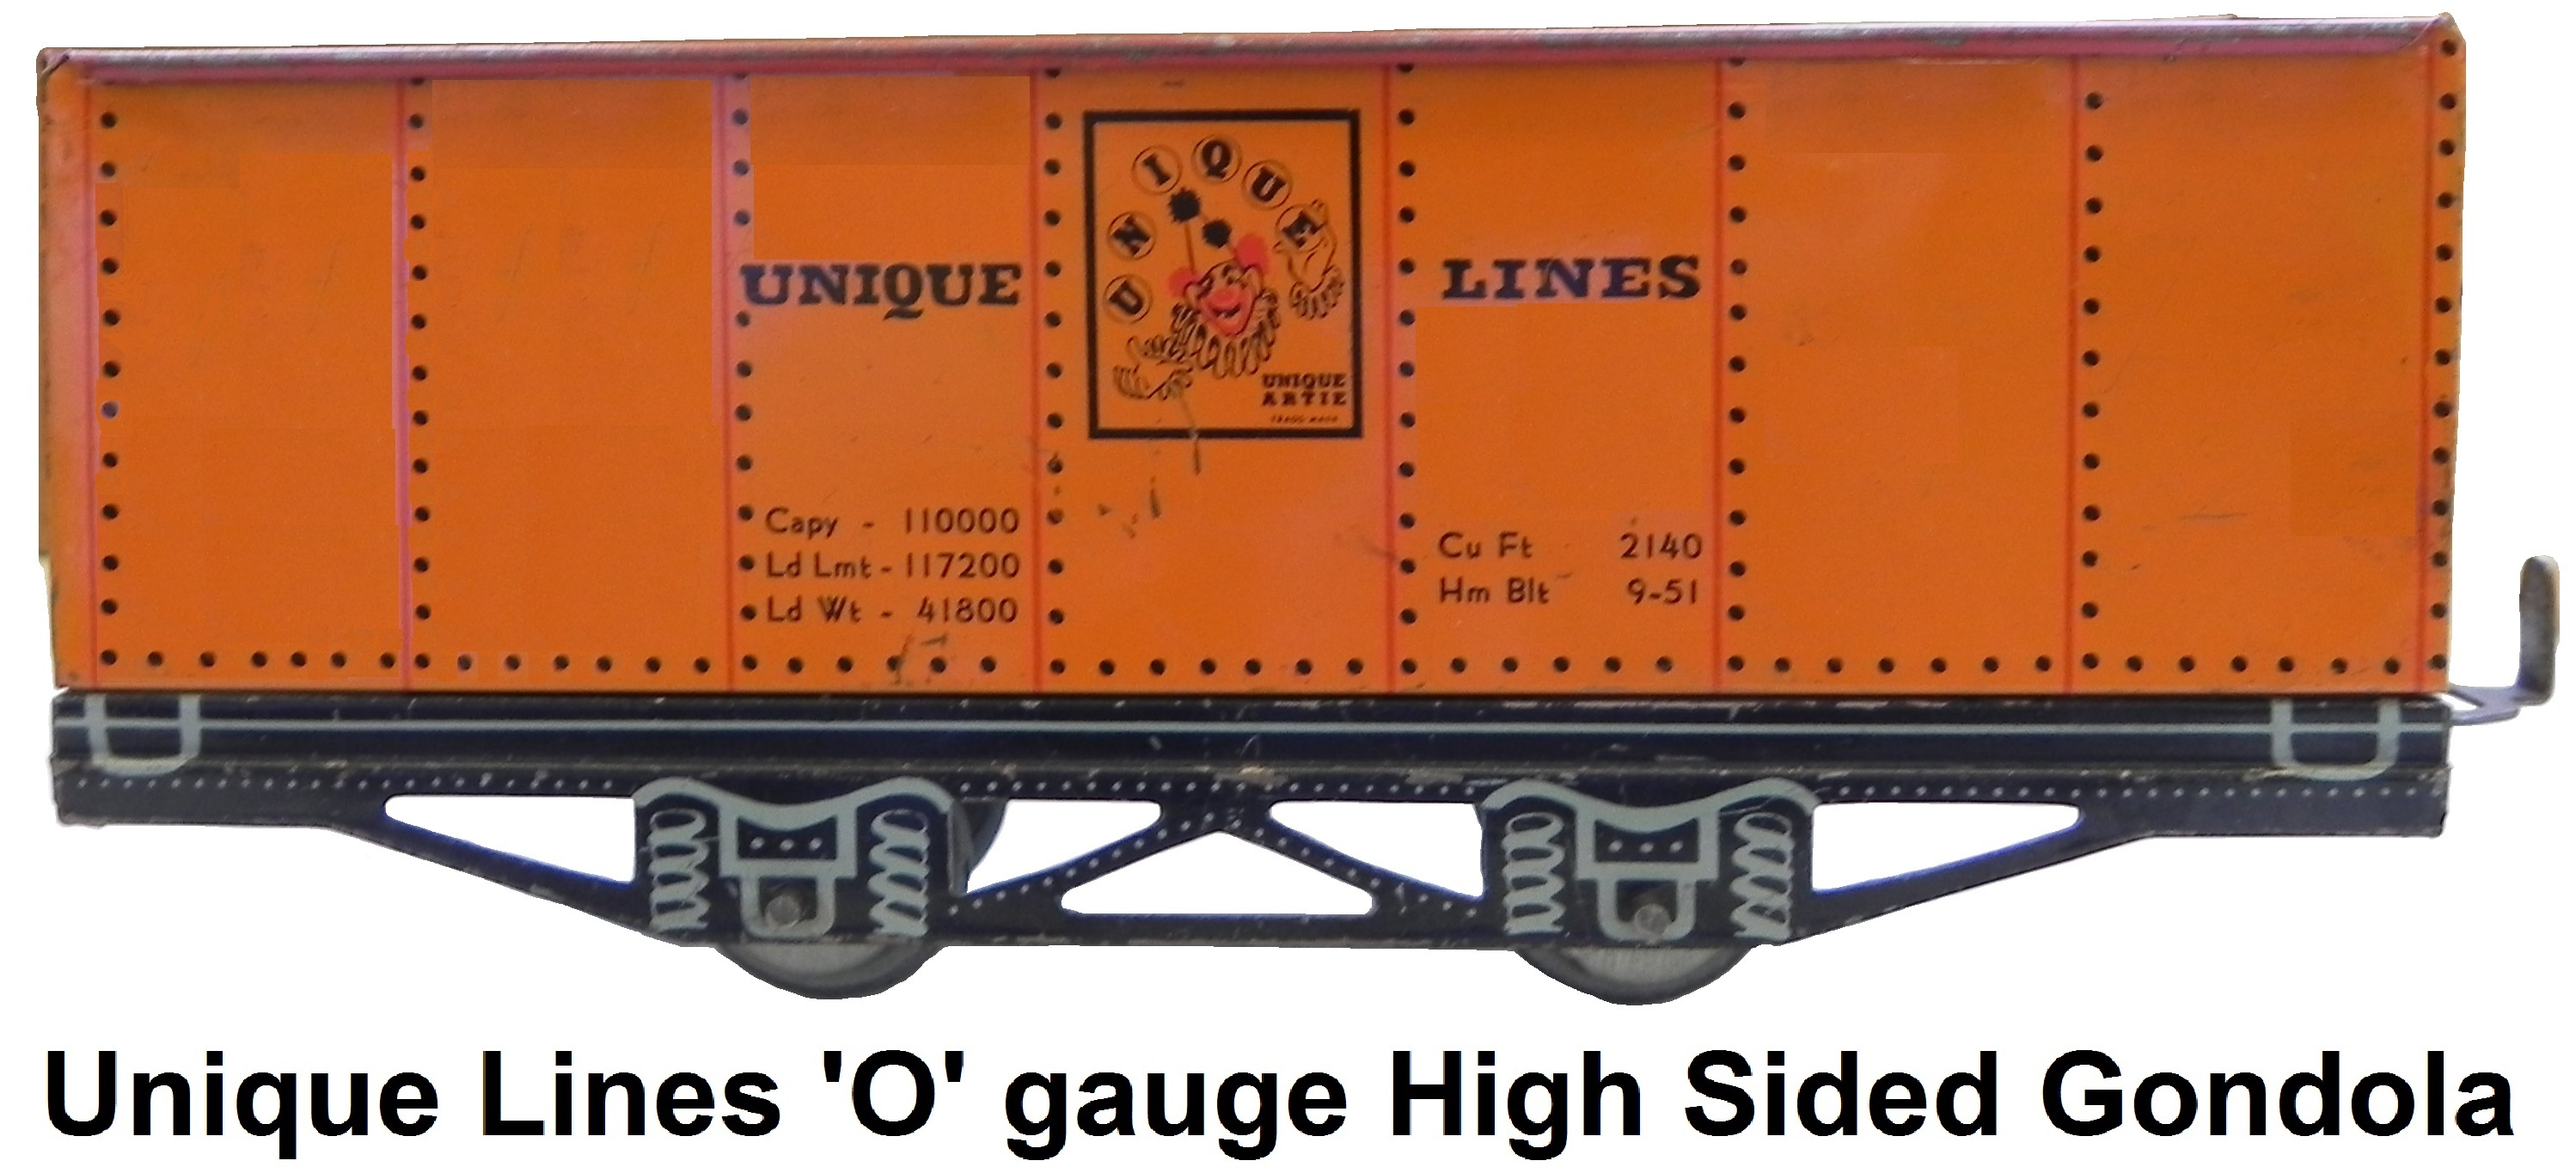 Unique Lines tinplate lithographed 'O' gauge high sided gondola